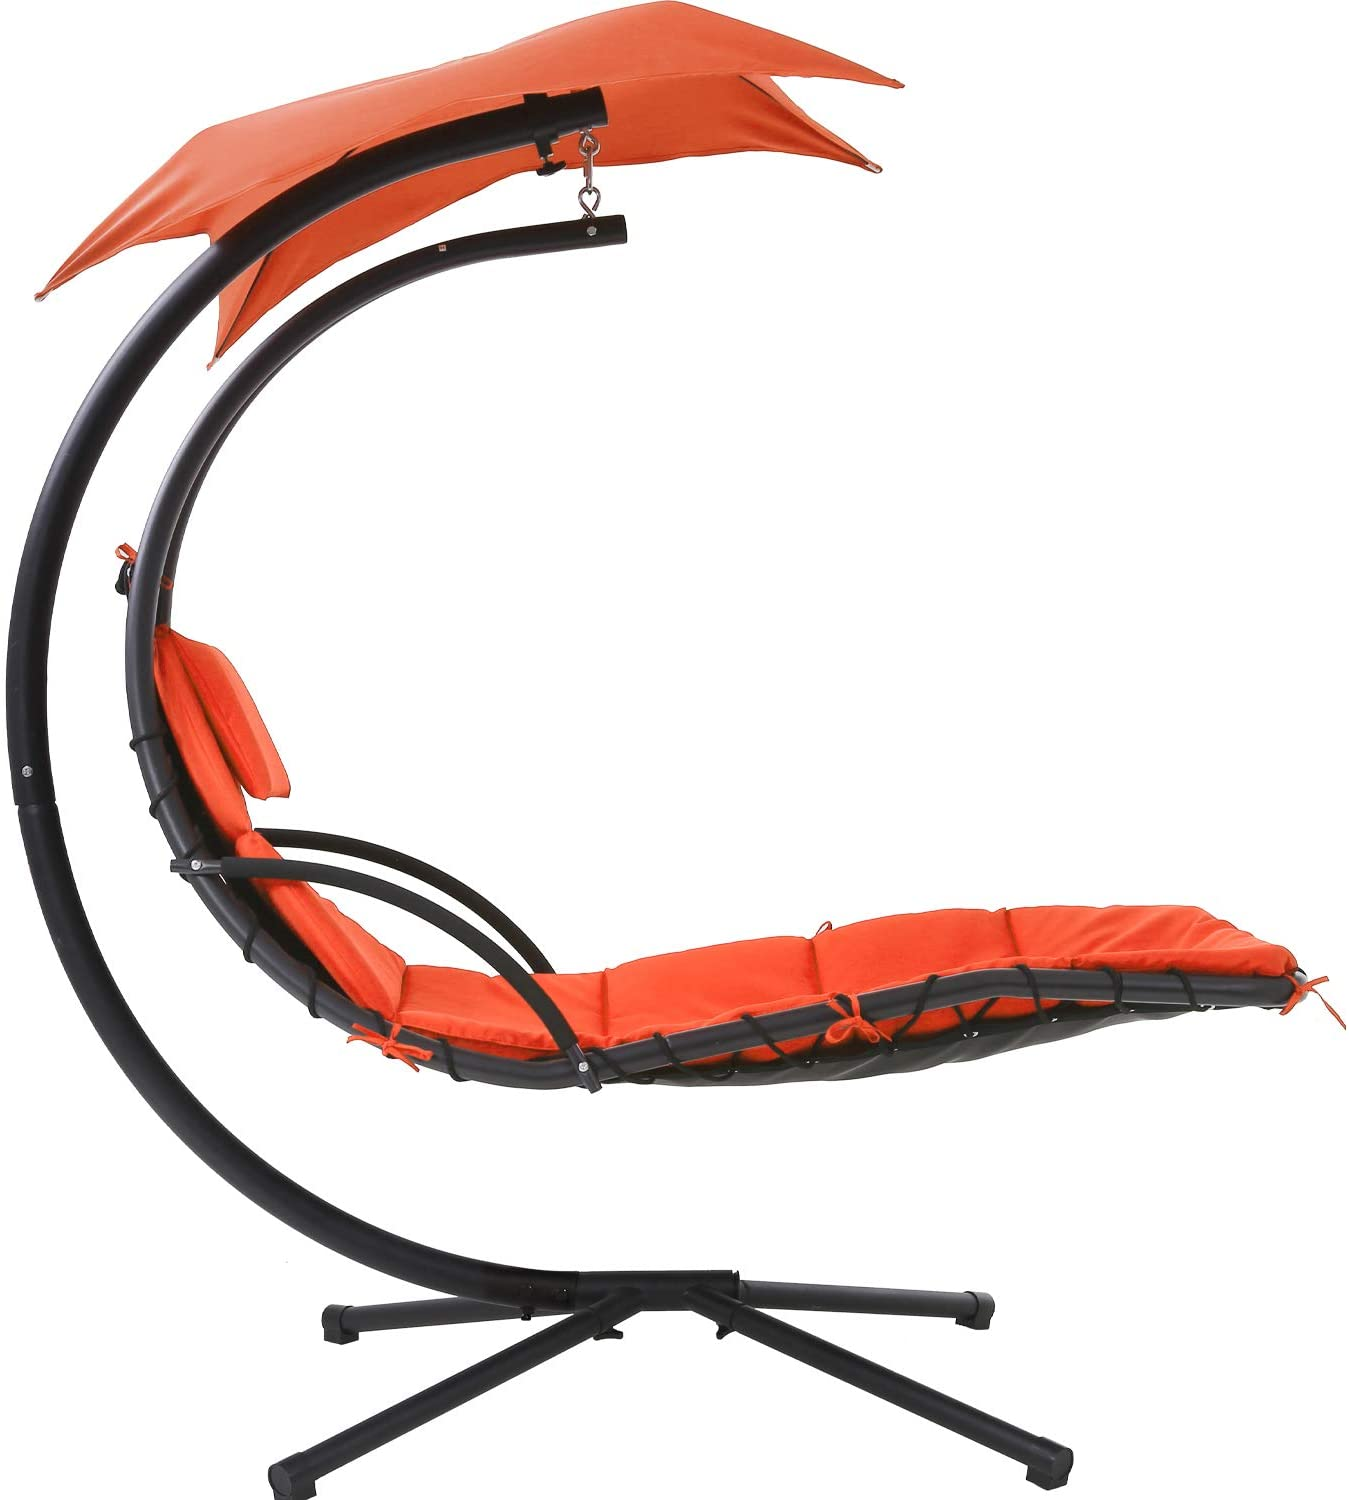 FDW Hanging Chaise Lounger